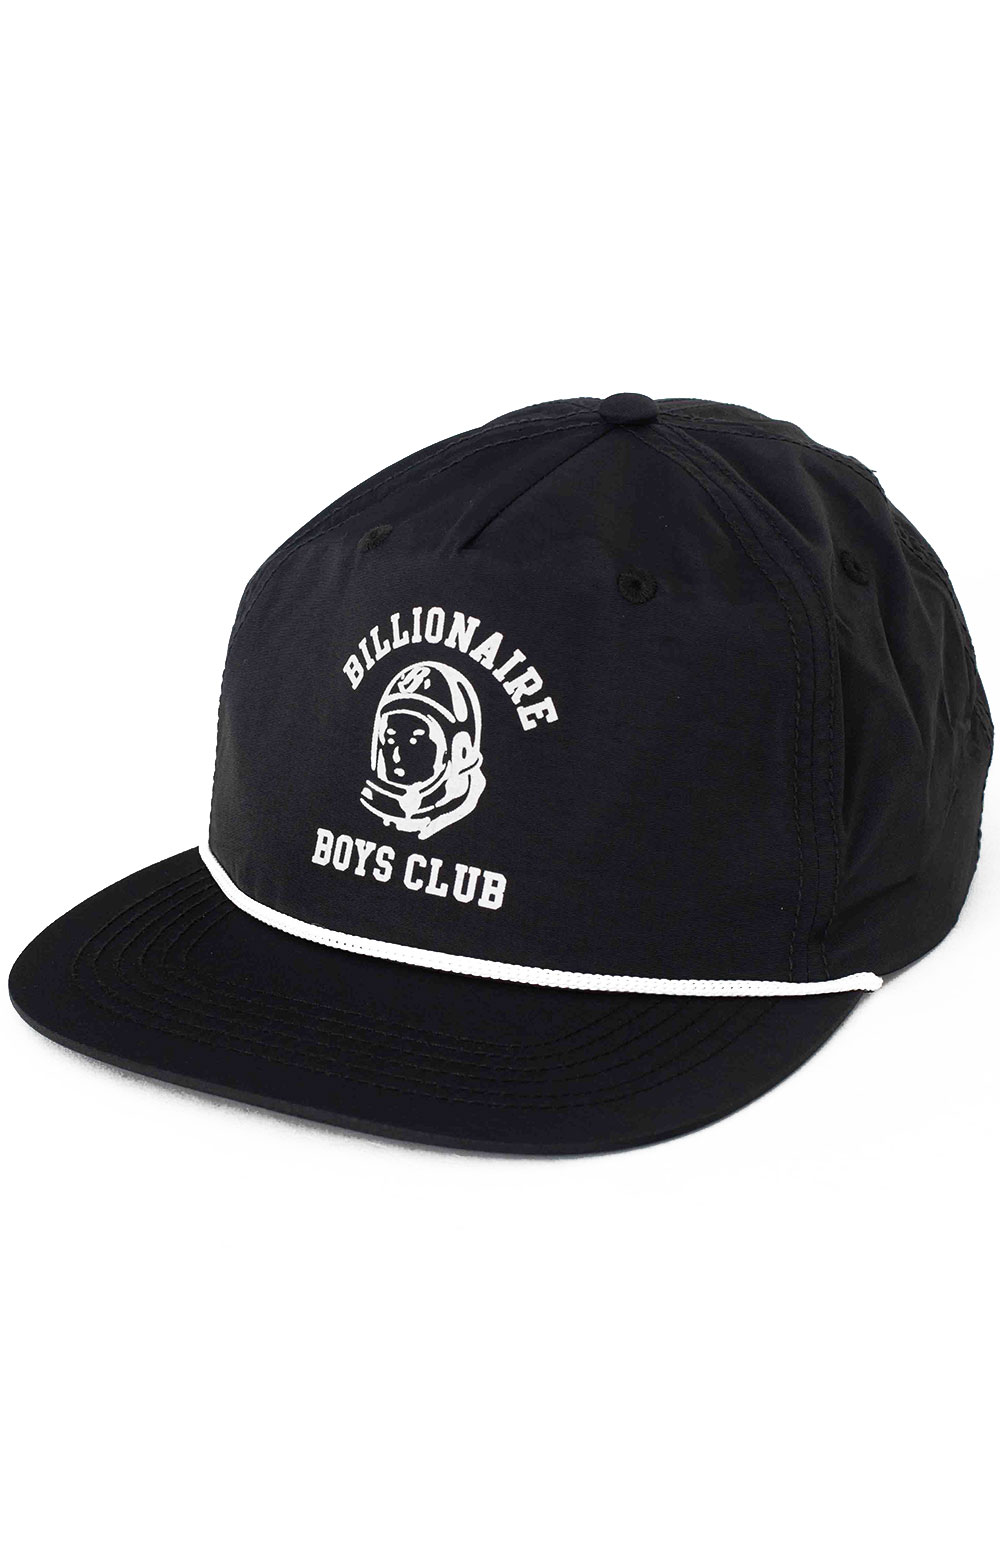 Clubhouse Snap-Back Hat - Black